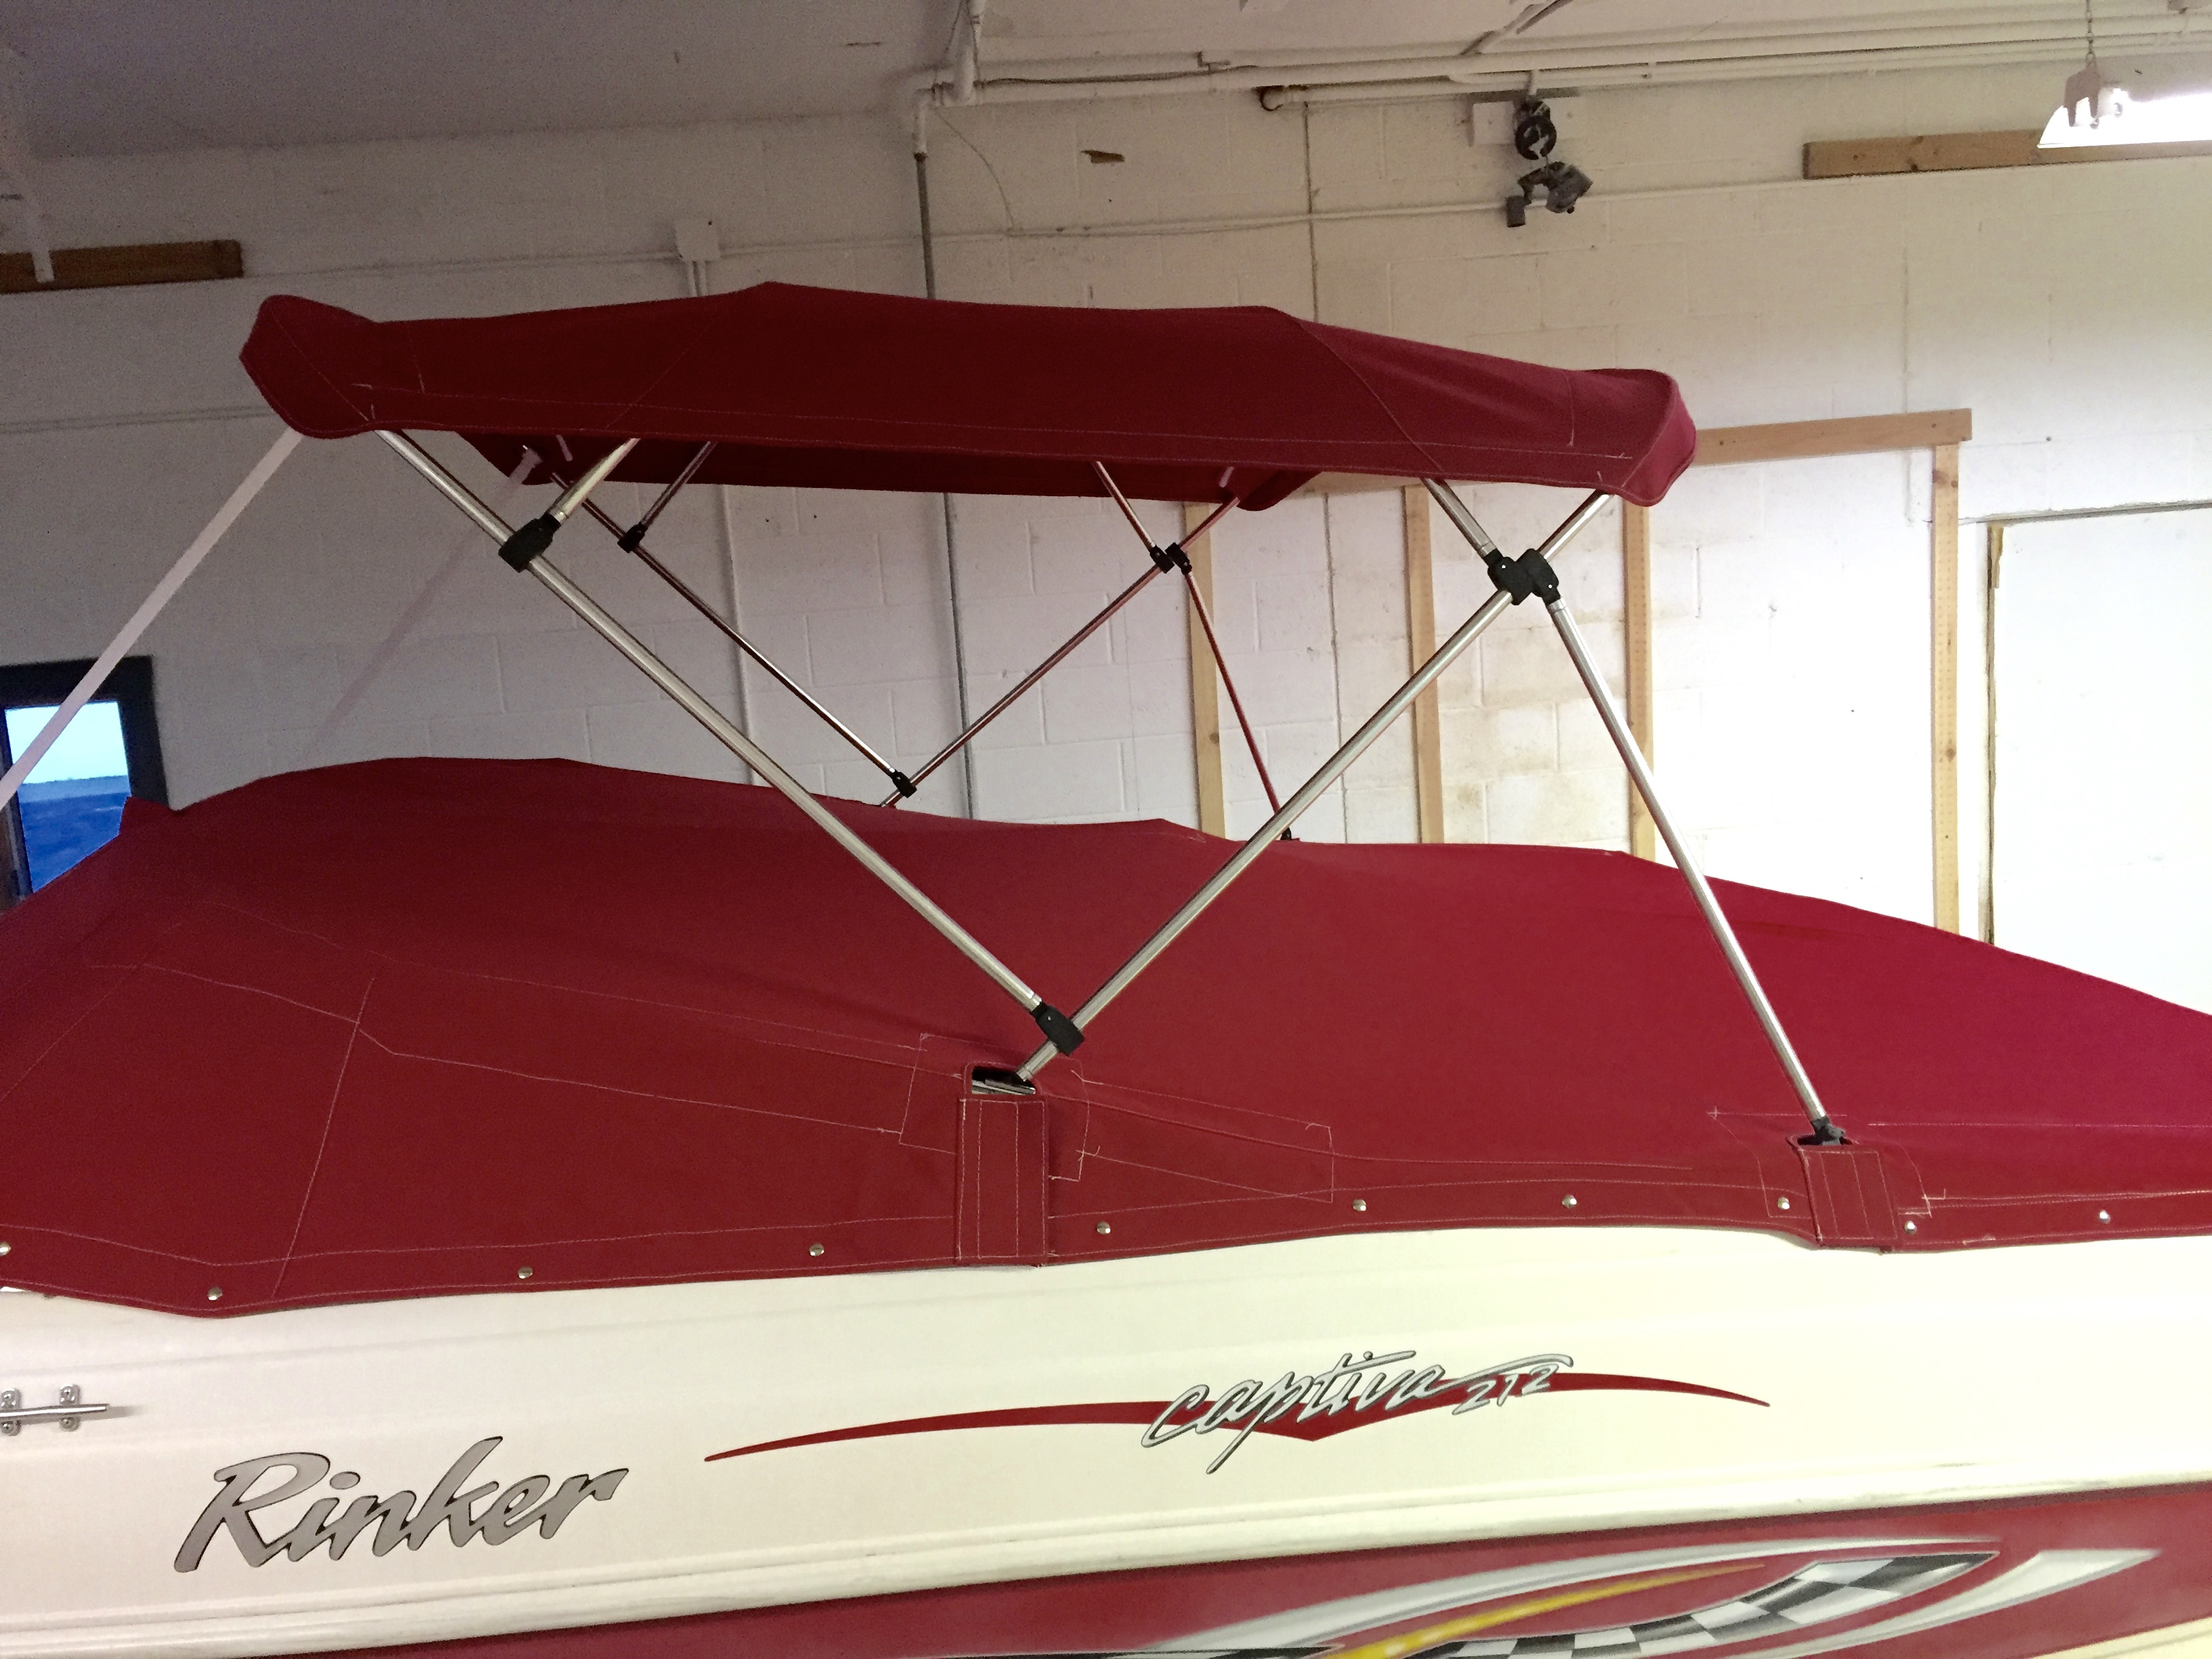 Bimini by Cutwater Canvas